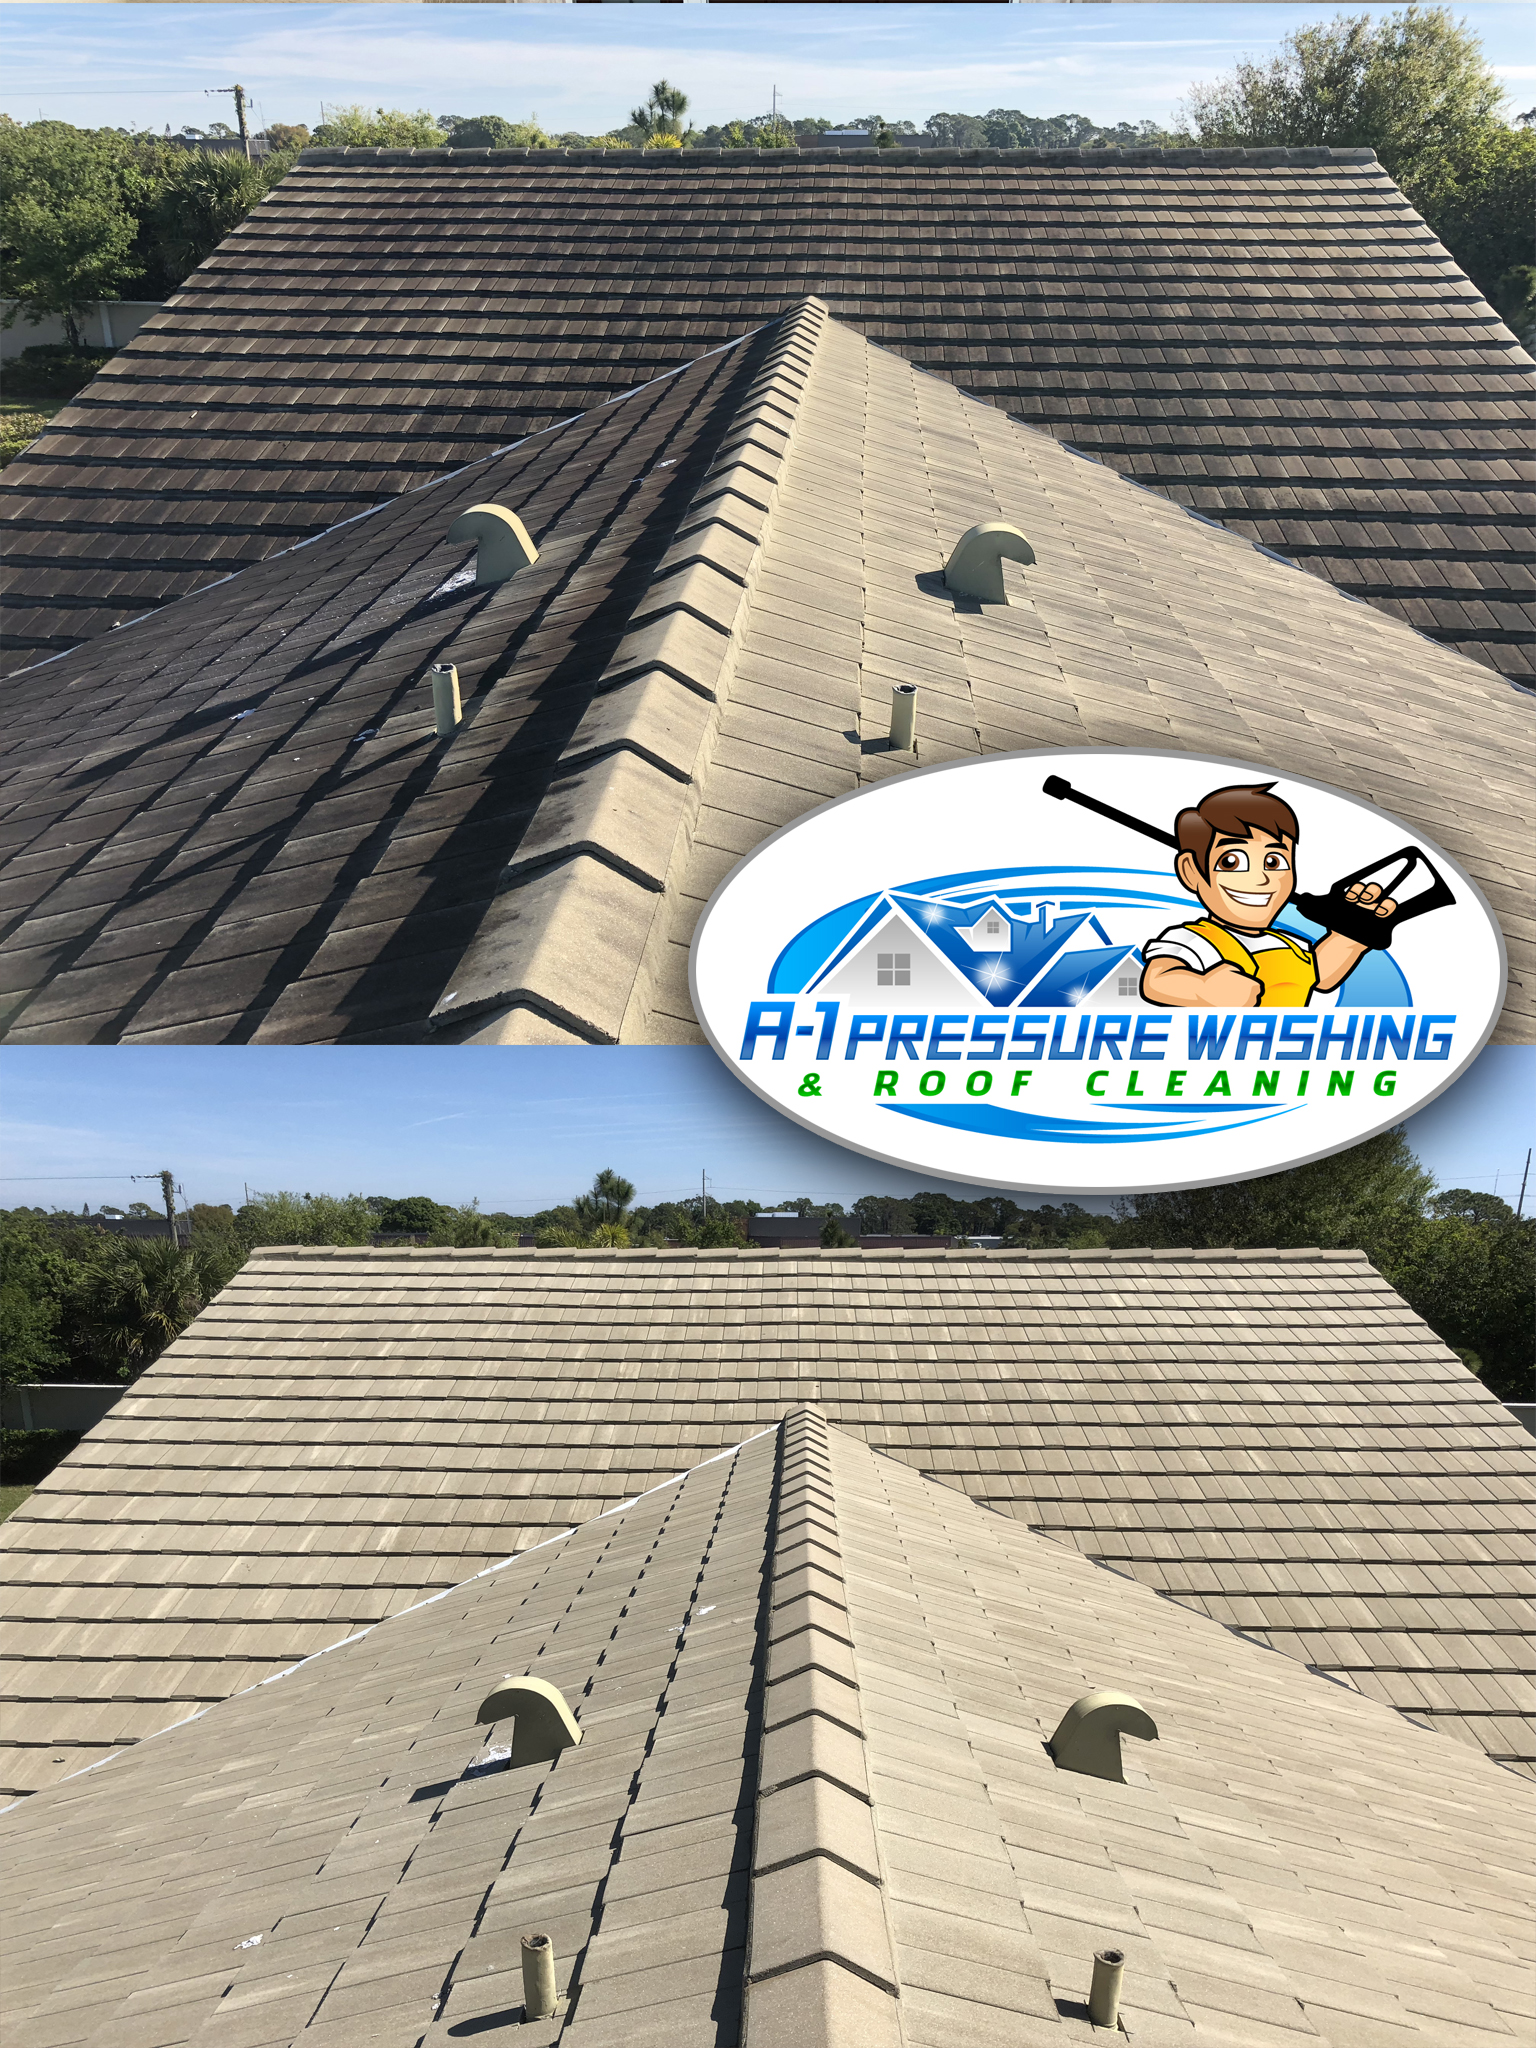 a 1 pressure washing roof cleaning